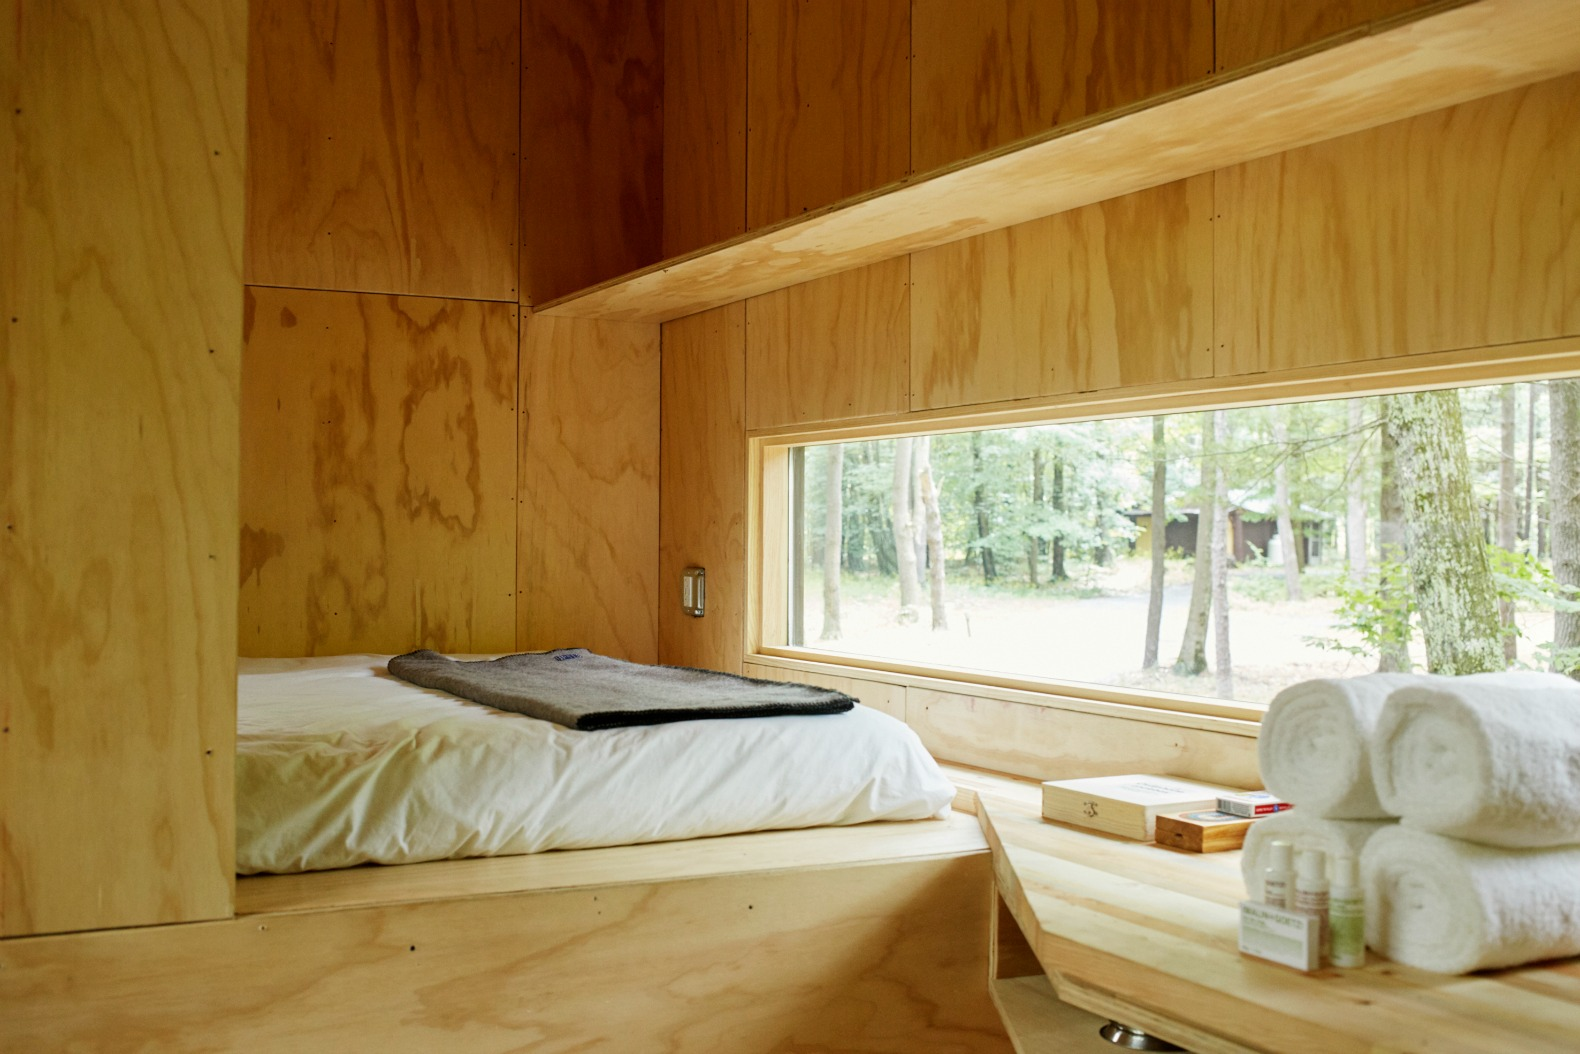 Tiny Home Designs: Tiny House Startup Getaway To Launch Off-grid Tiny Homes Near NYC This Weekend